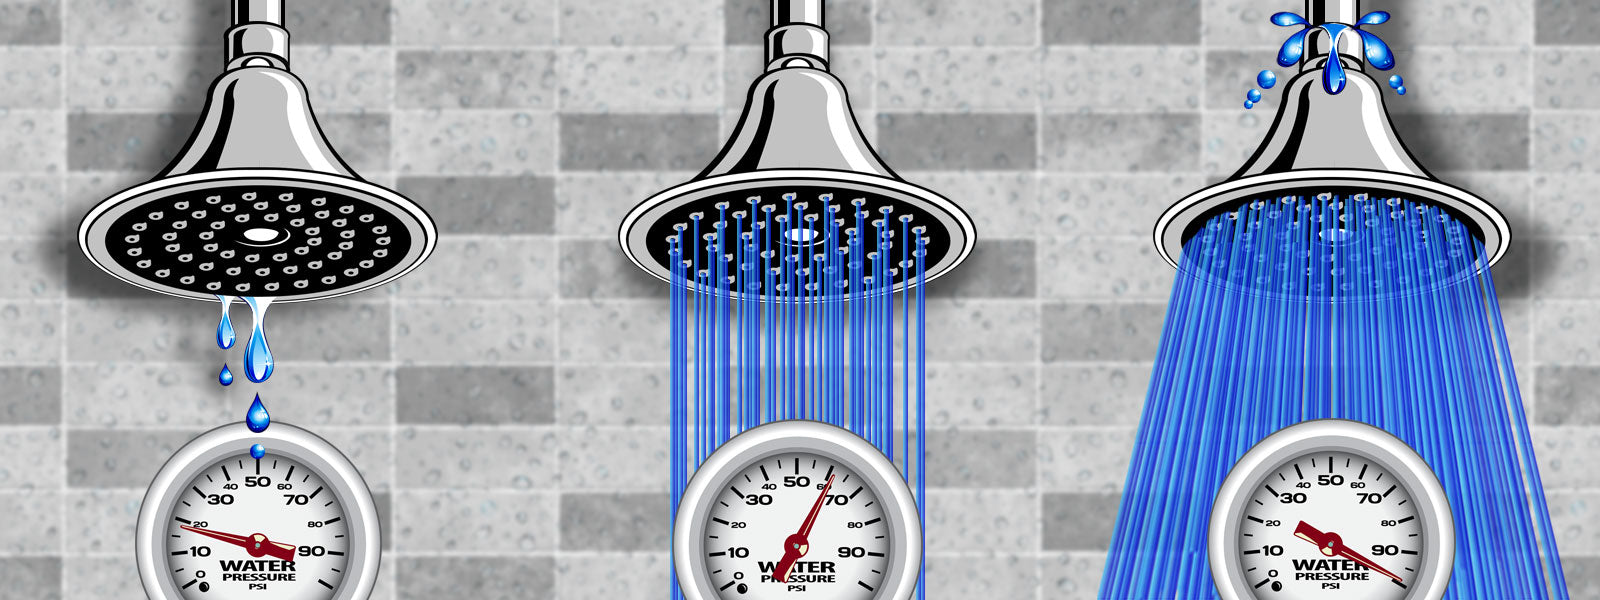 Water Pressure Guide: Which taps and showers will work?